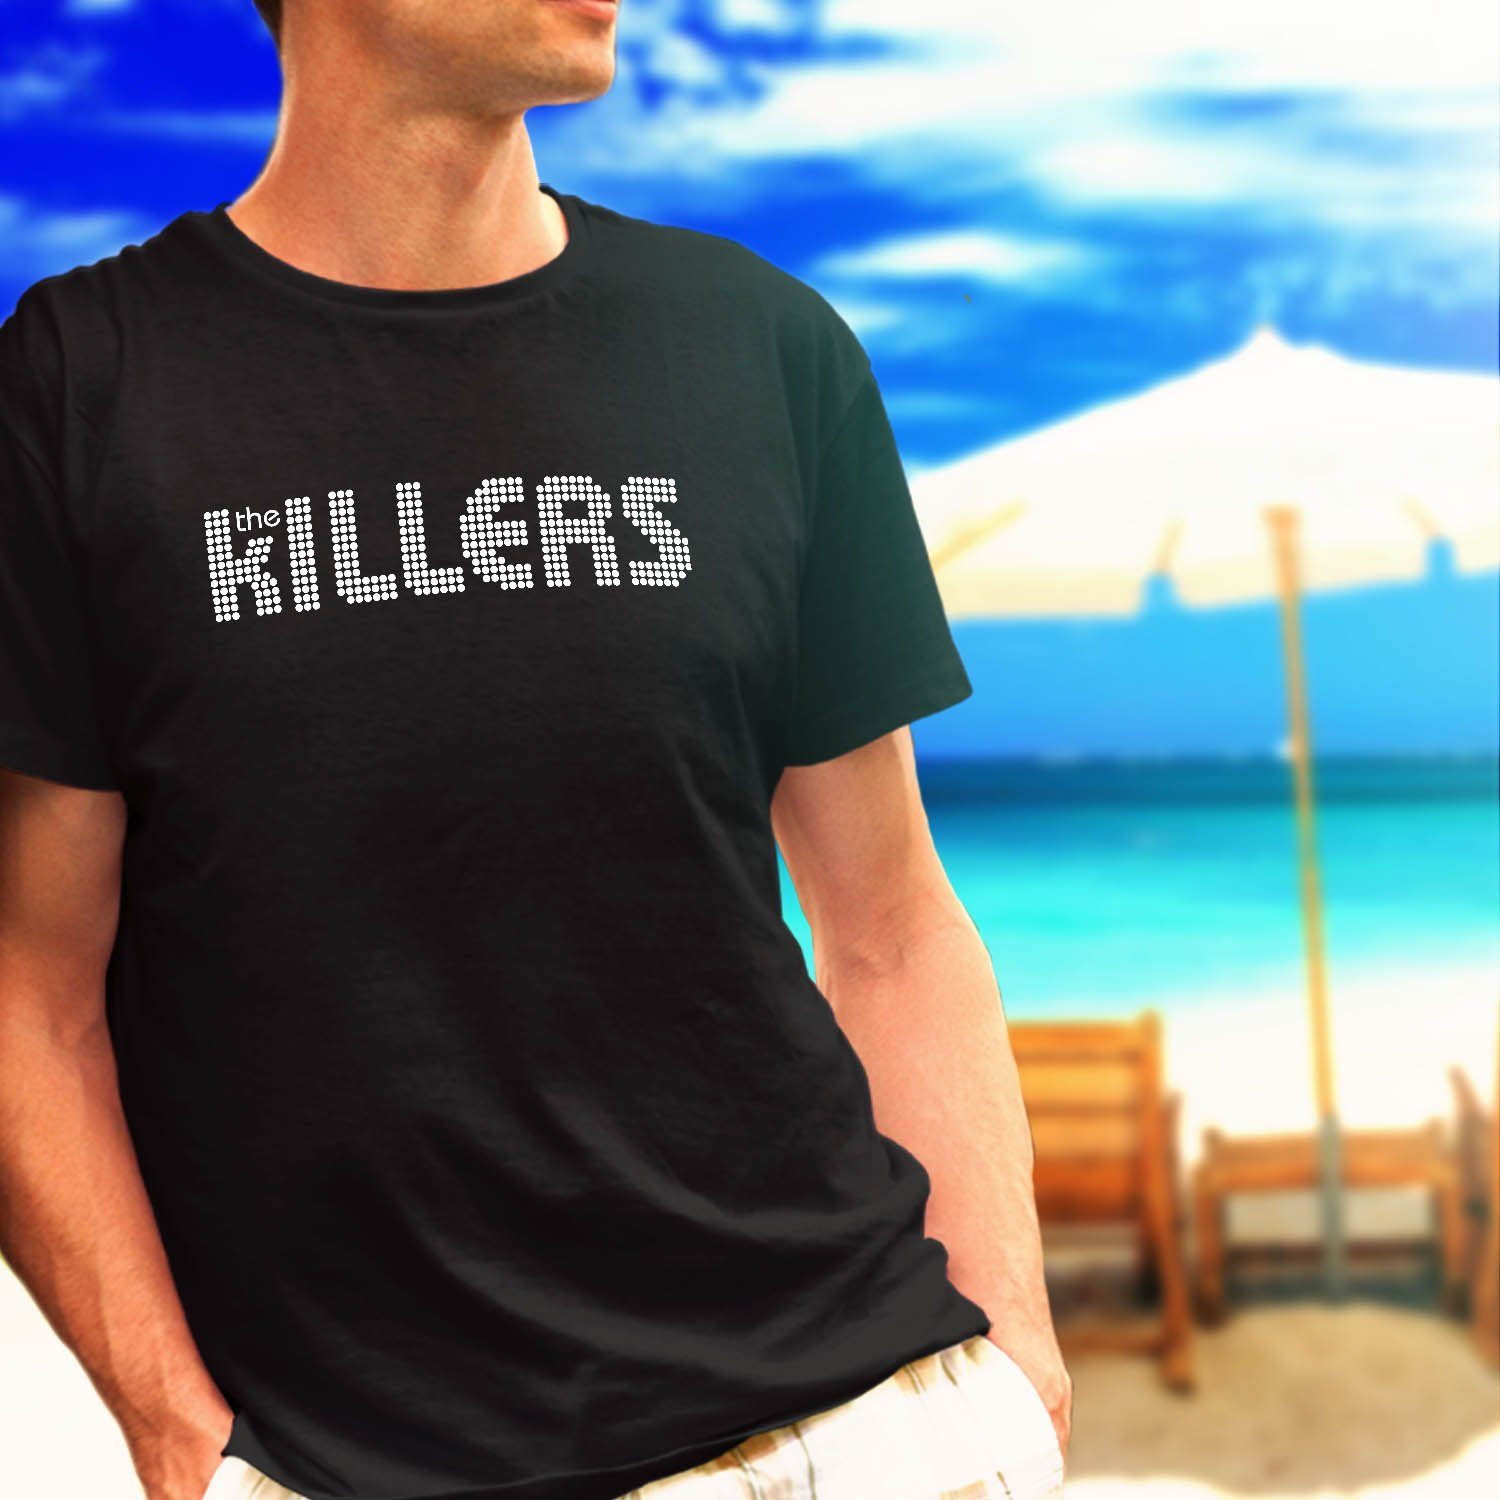 the killers hot fuss band tour concert album black t-shirt tshirt shirts tee SIZE S